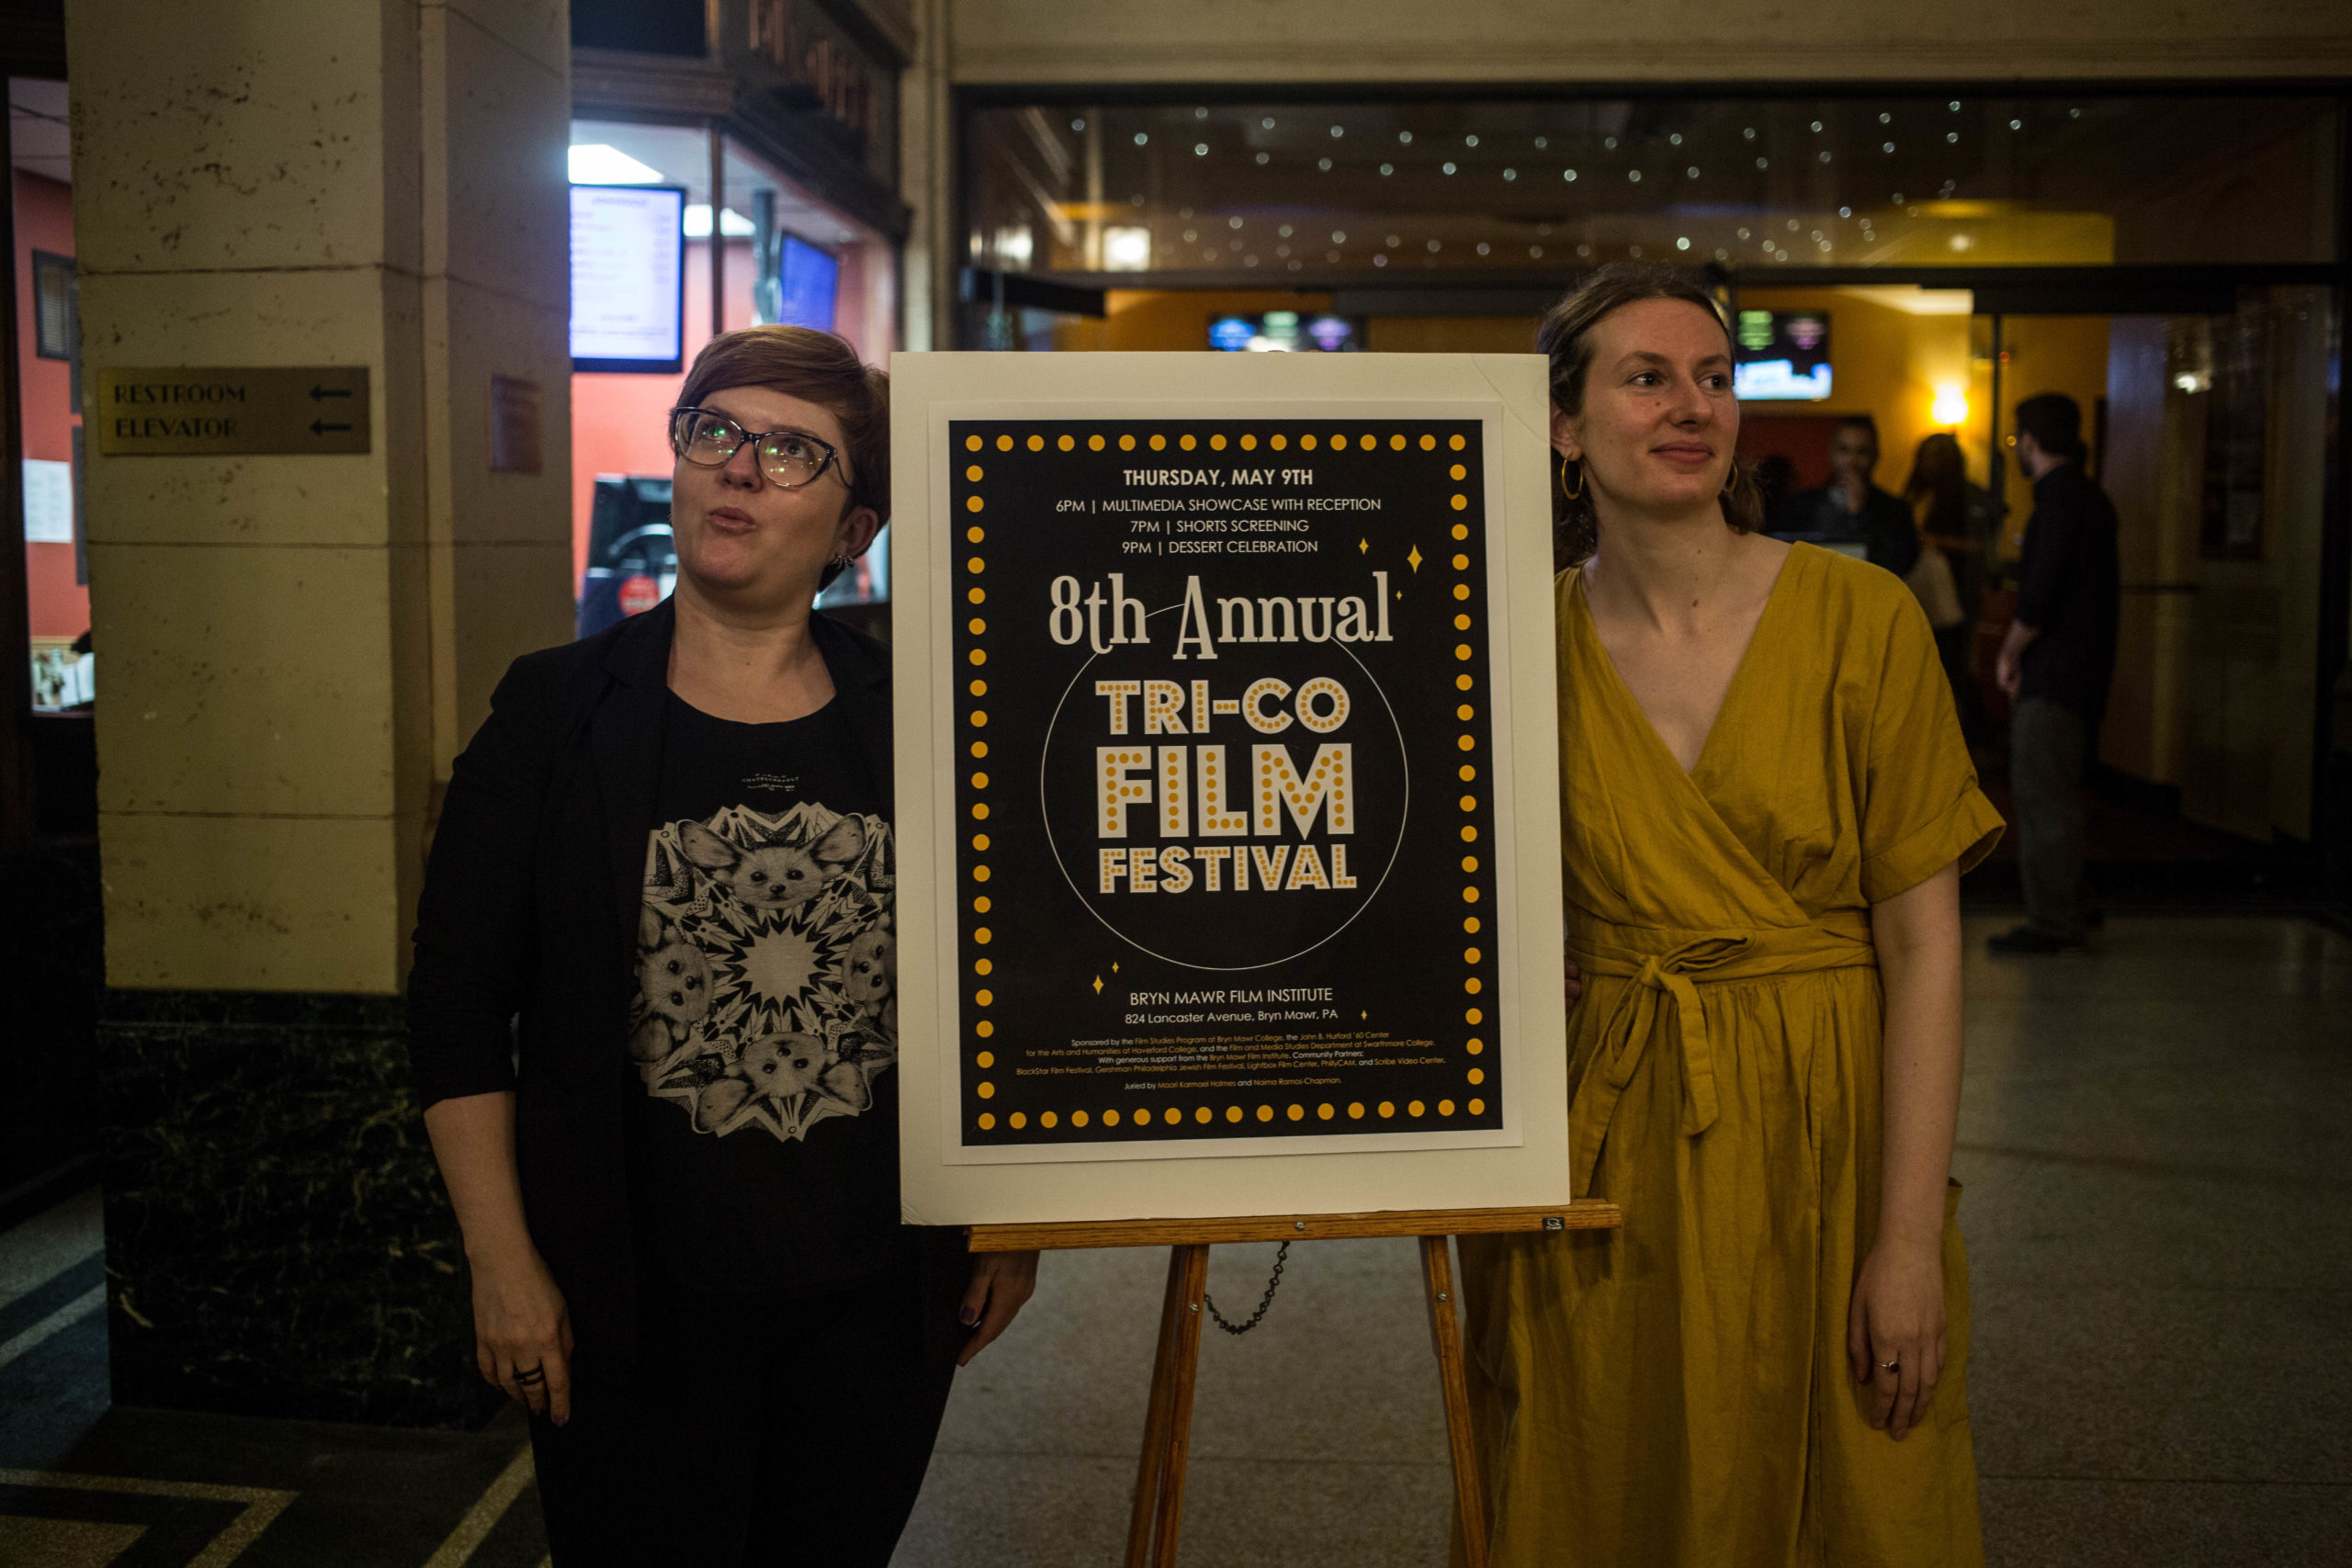 Tri-Co Film Festival Co-directors Dajana Denes Walters and Sophia Abraham-Raveson '18 stand in front of the entrance to Bryn Mawr Film Institute with a poster of the festival.